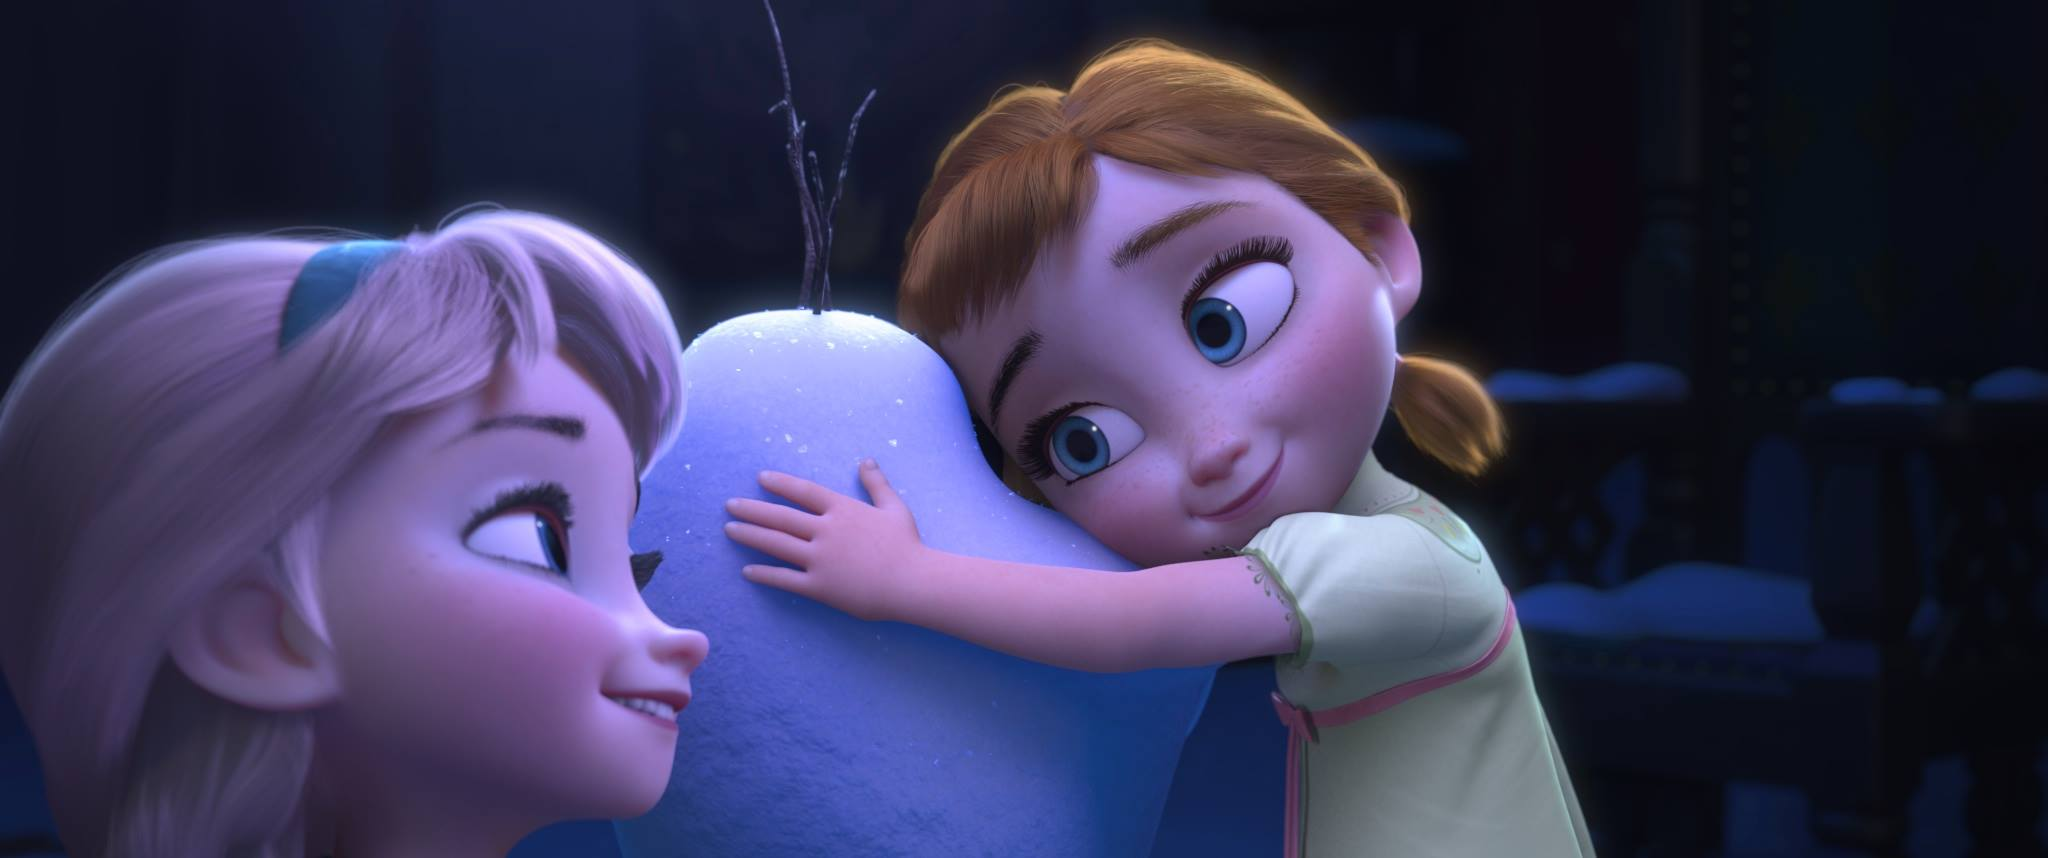 Image little anna and elsa with disneywiki - Olaf and anna ...